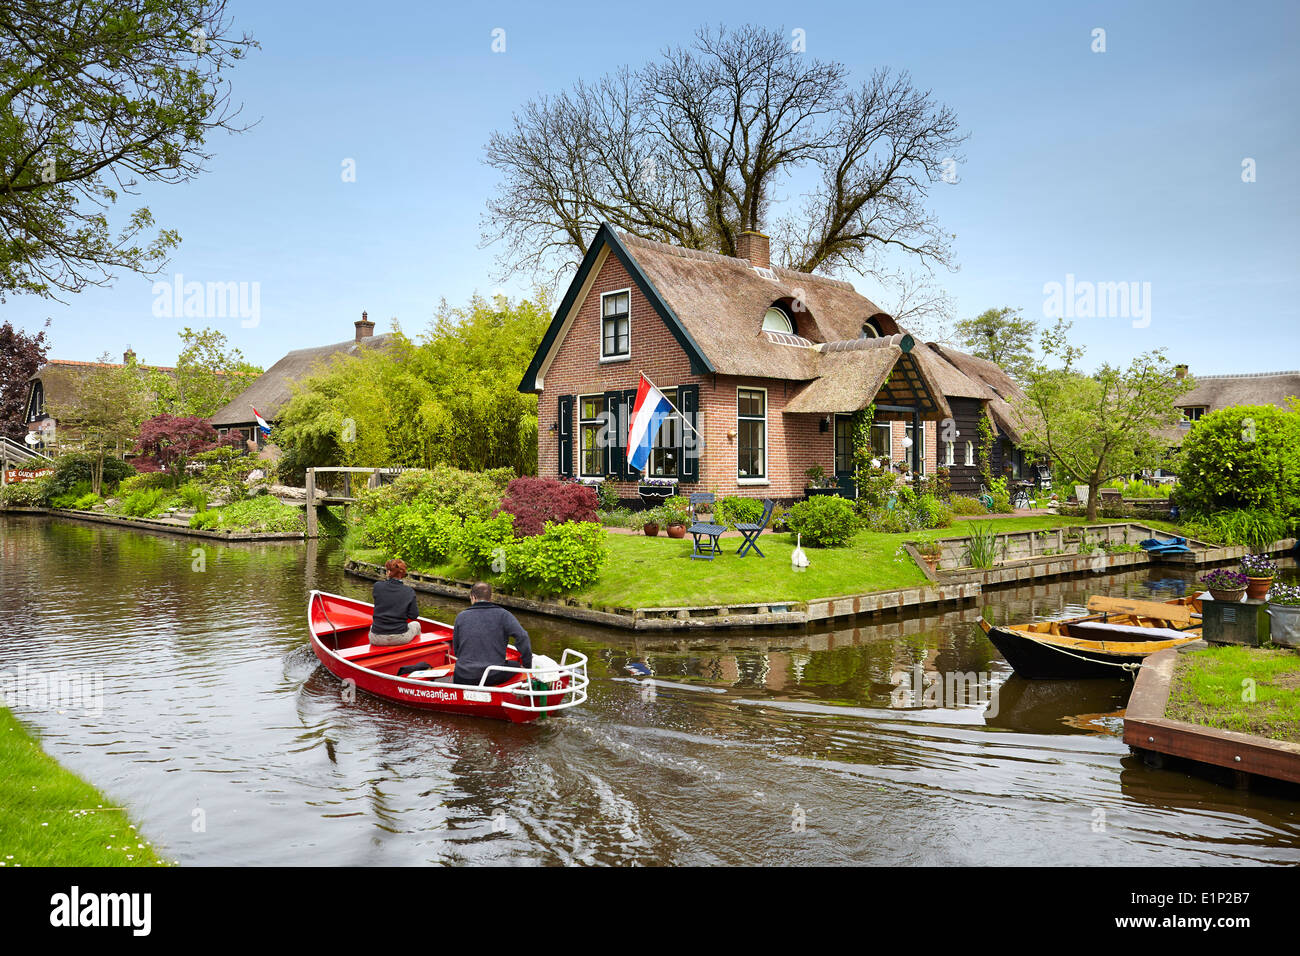 Boat on the canals, local transport, Giethoorn village - Holland Netherlands - Stock Image